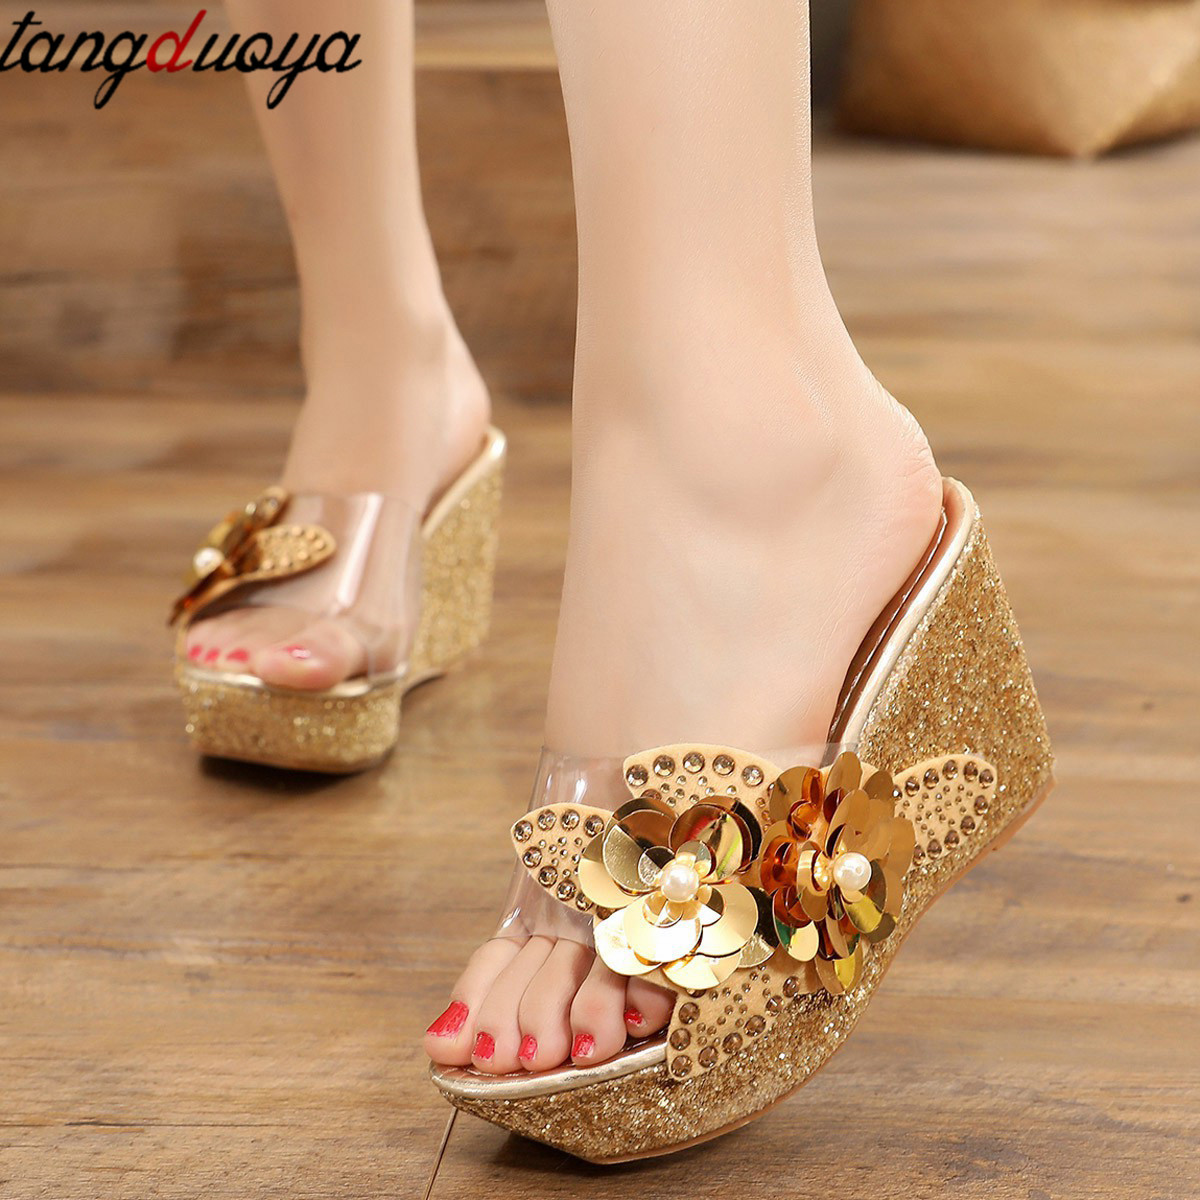 Platform Slippers Wedge Slides Slippers Women Summer Shoes Beach Sandals Slippers Ladies Shoes With Heels Pearl Flower 2019